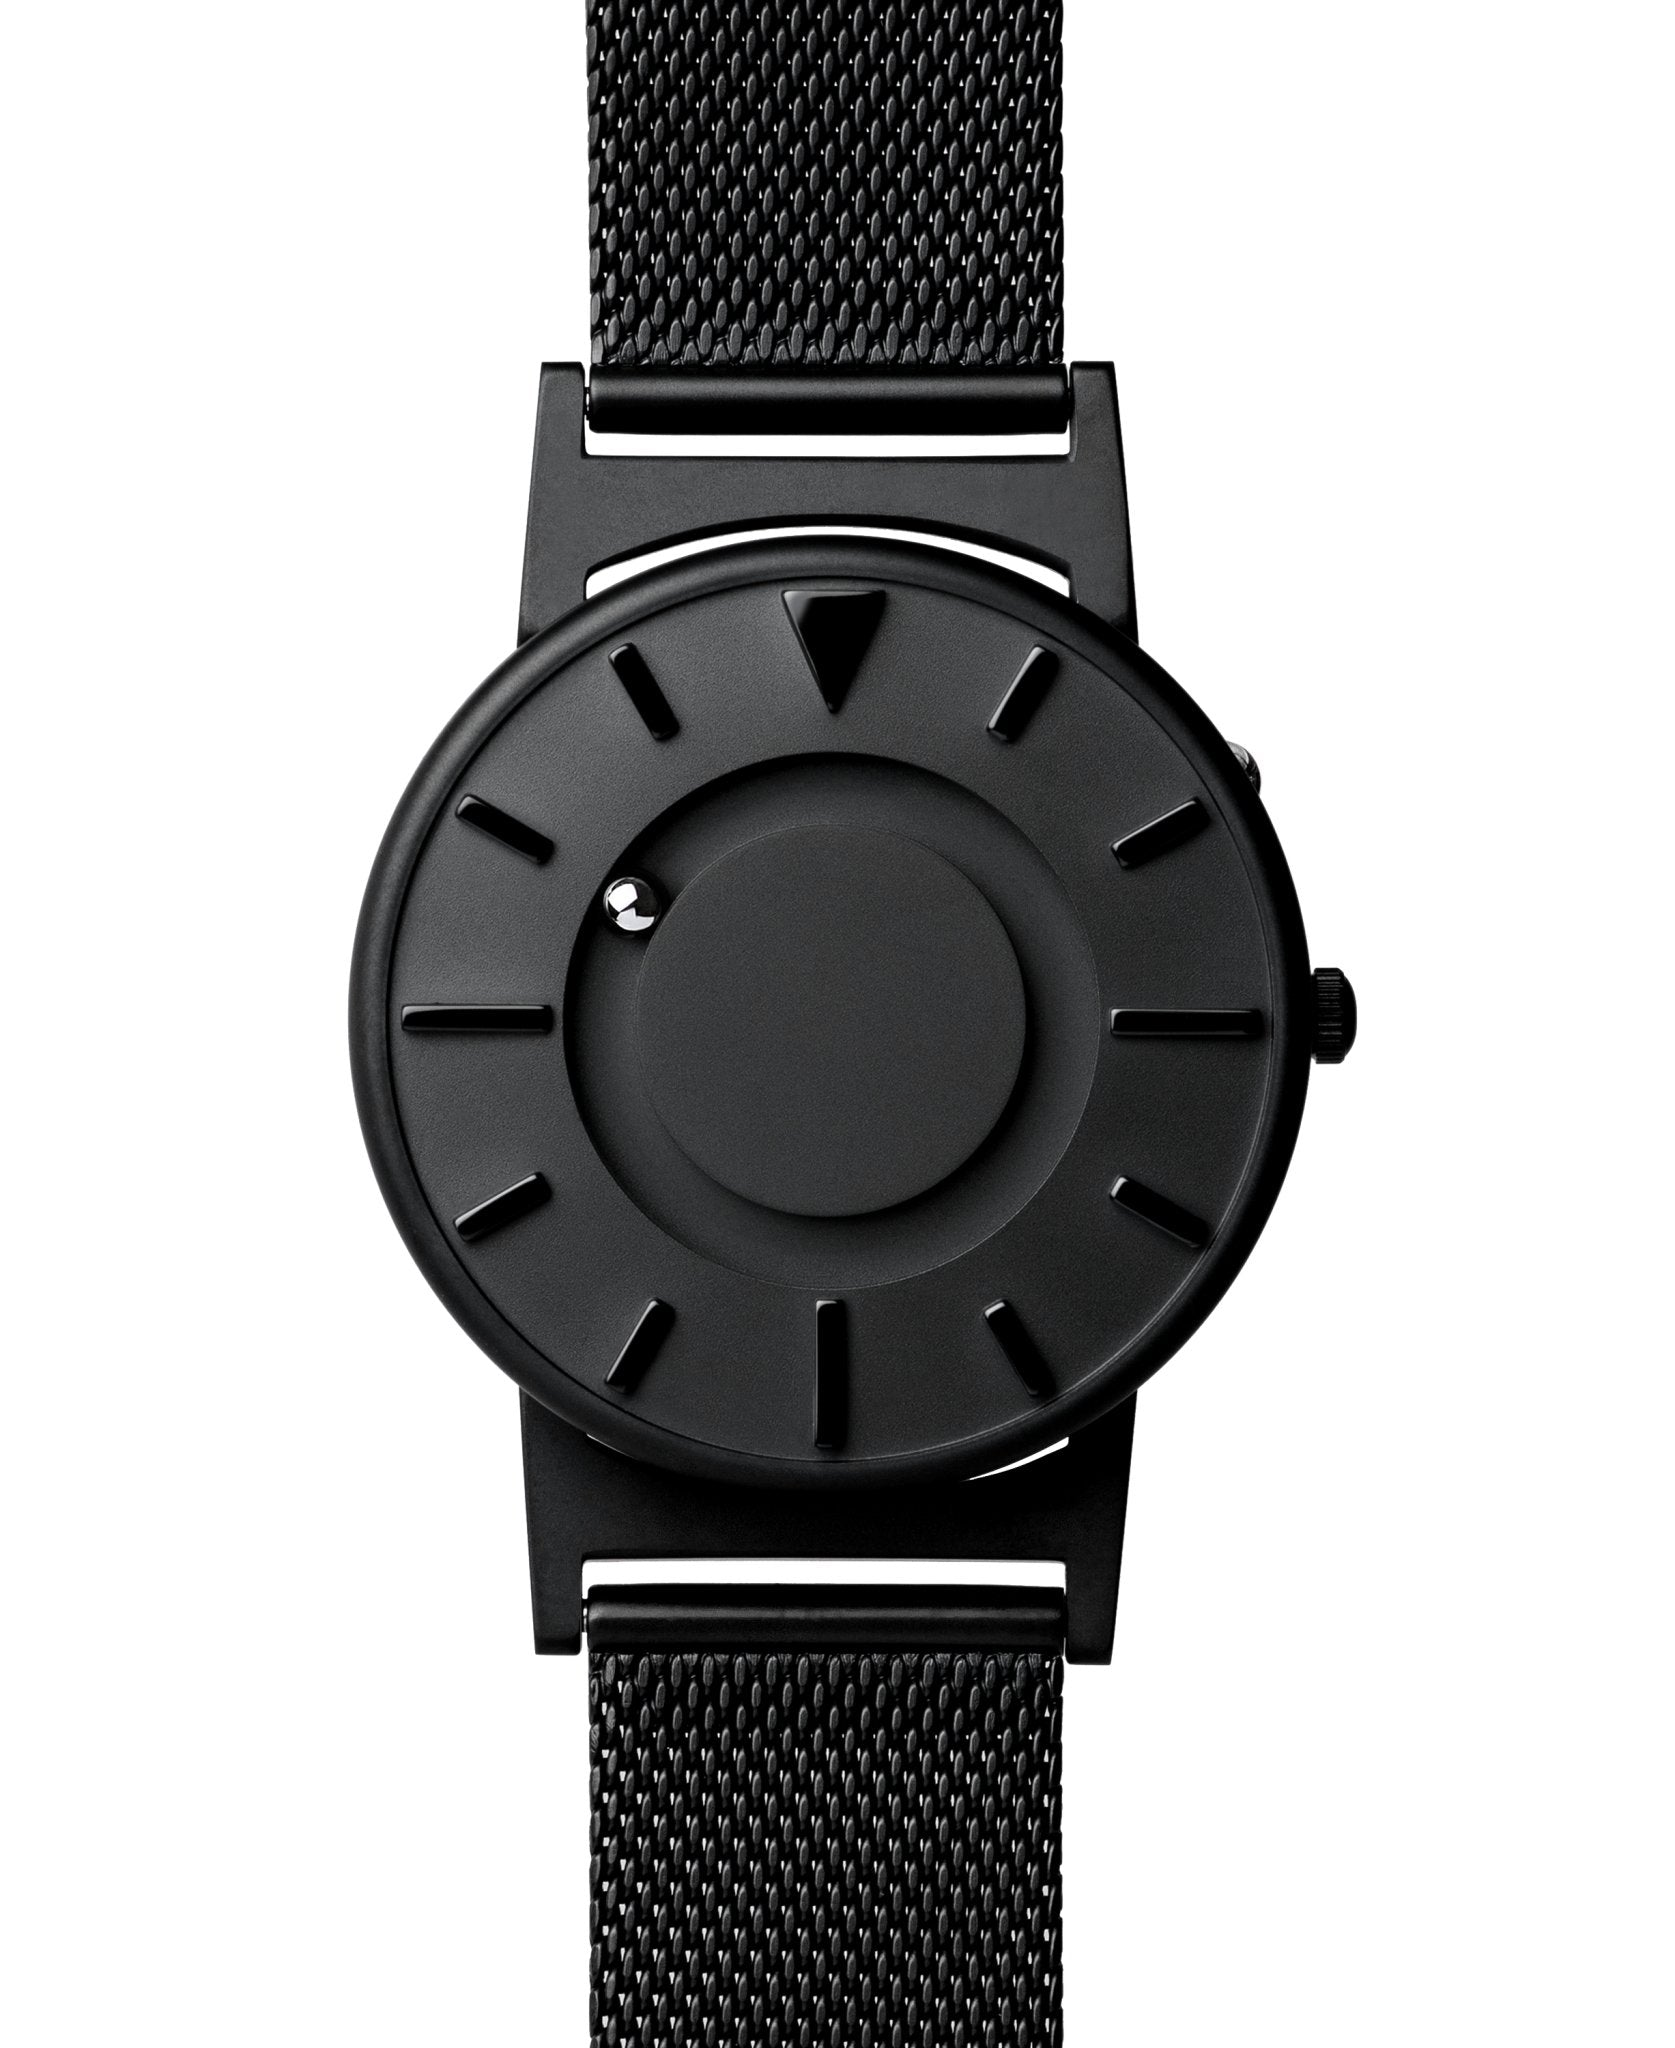 Eone Bradley Black Mesh - Watches & Crystals